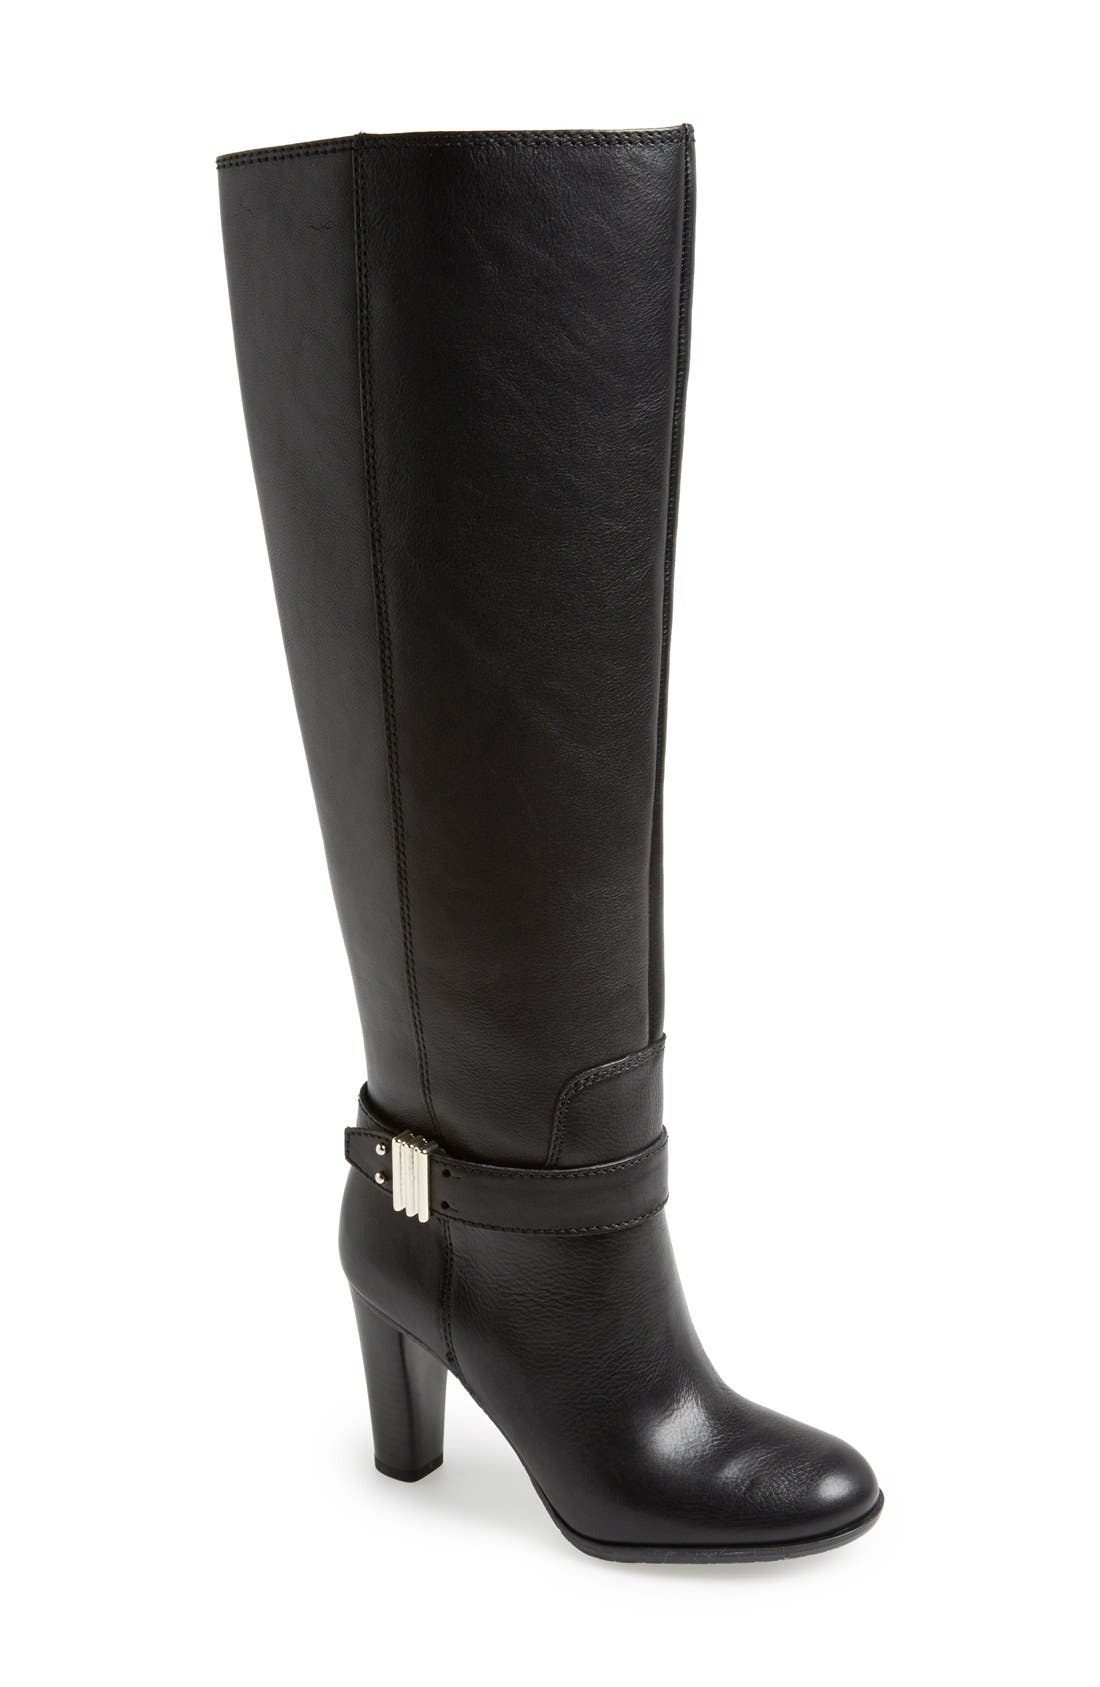 Alternate Image 1 Selected - Enzo Angiolini 'Sumilo' Boot (Wide Calf) (Women)